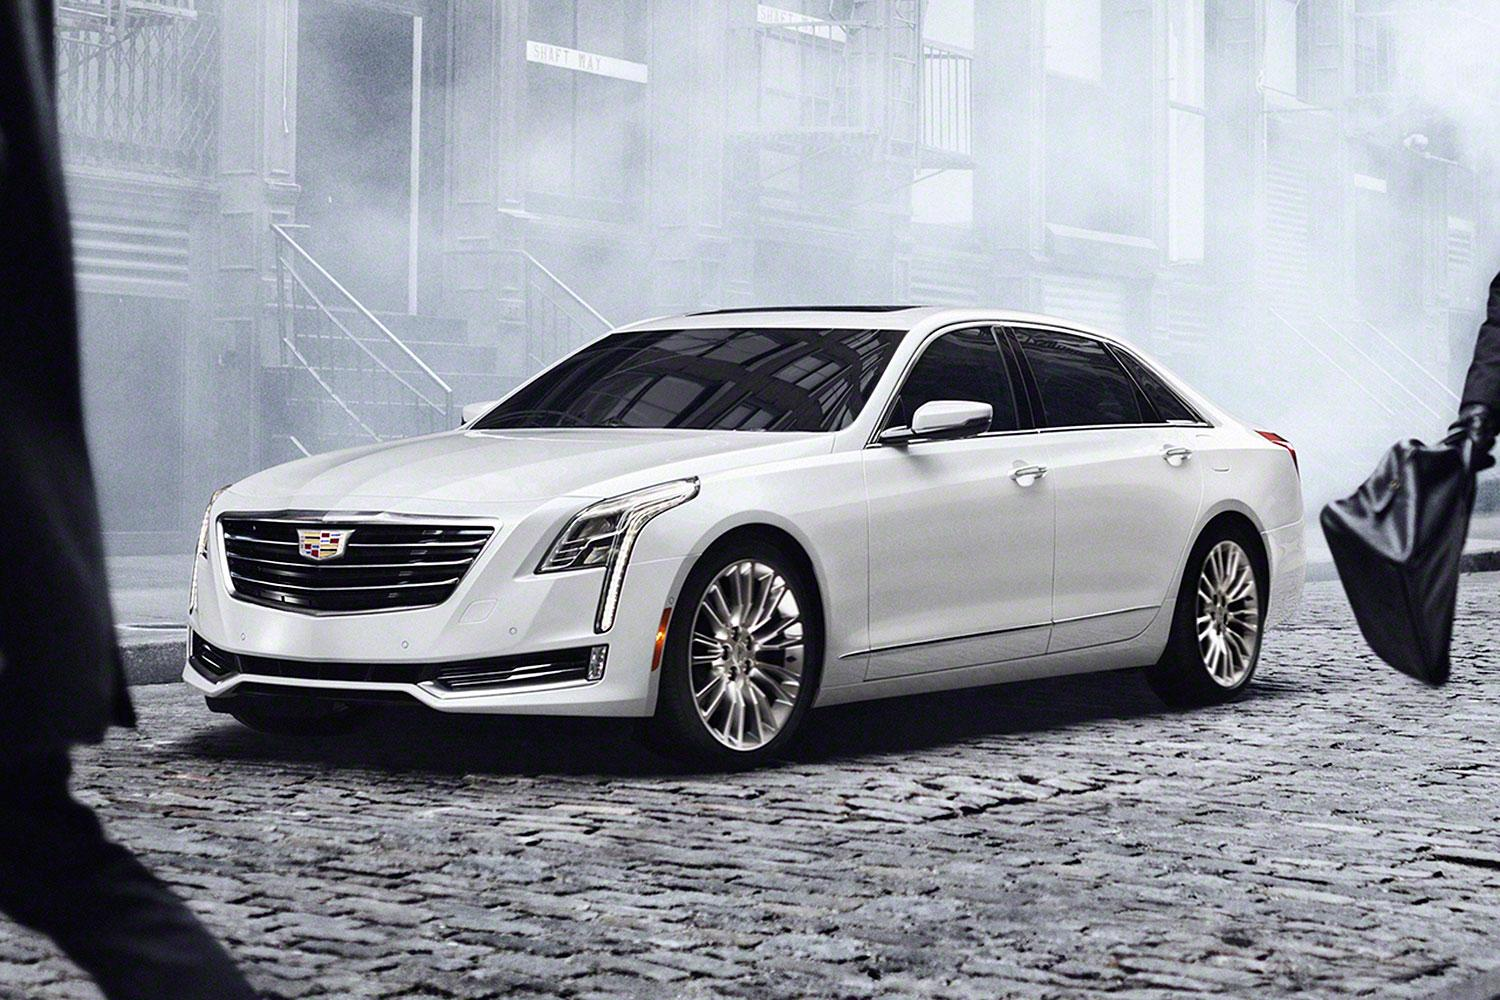 Cadillac's eco-friendly CT6 plug-in hybrid will wear a 'made in China' label